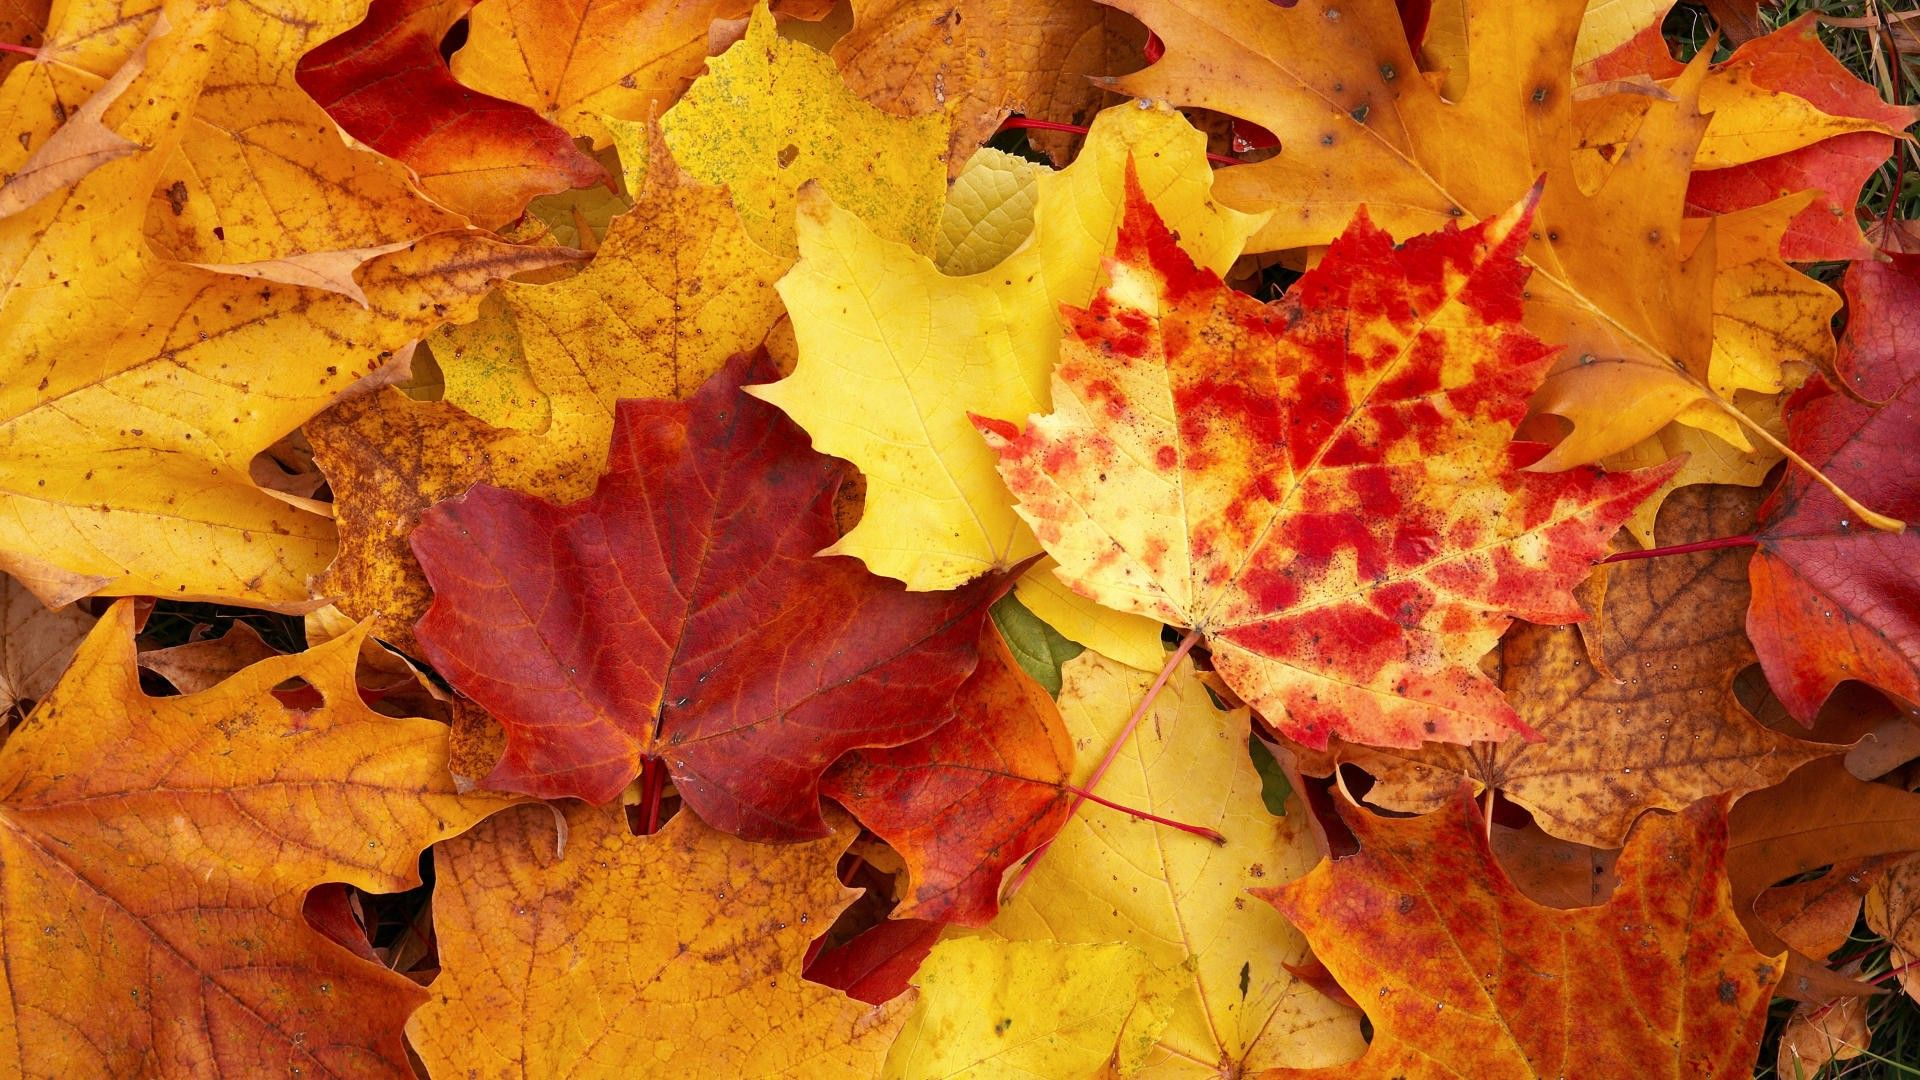 Autumn Leaves Photography Wallpaper HD Resolution with High